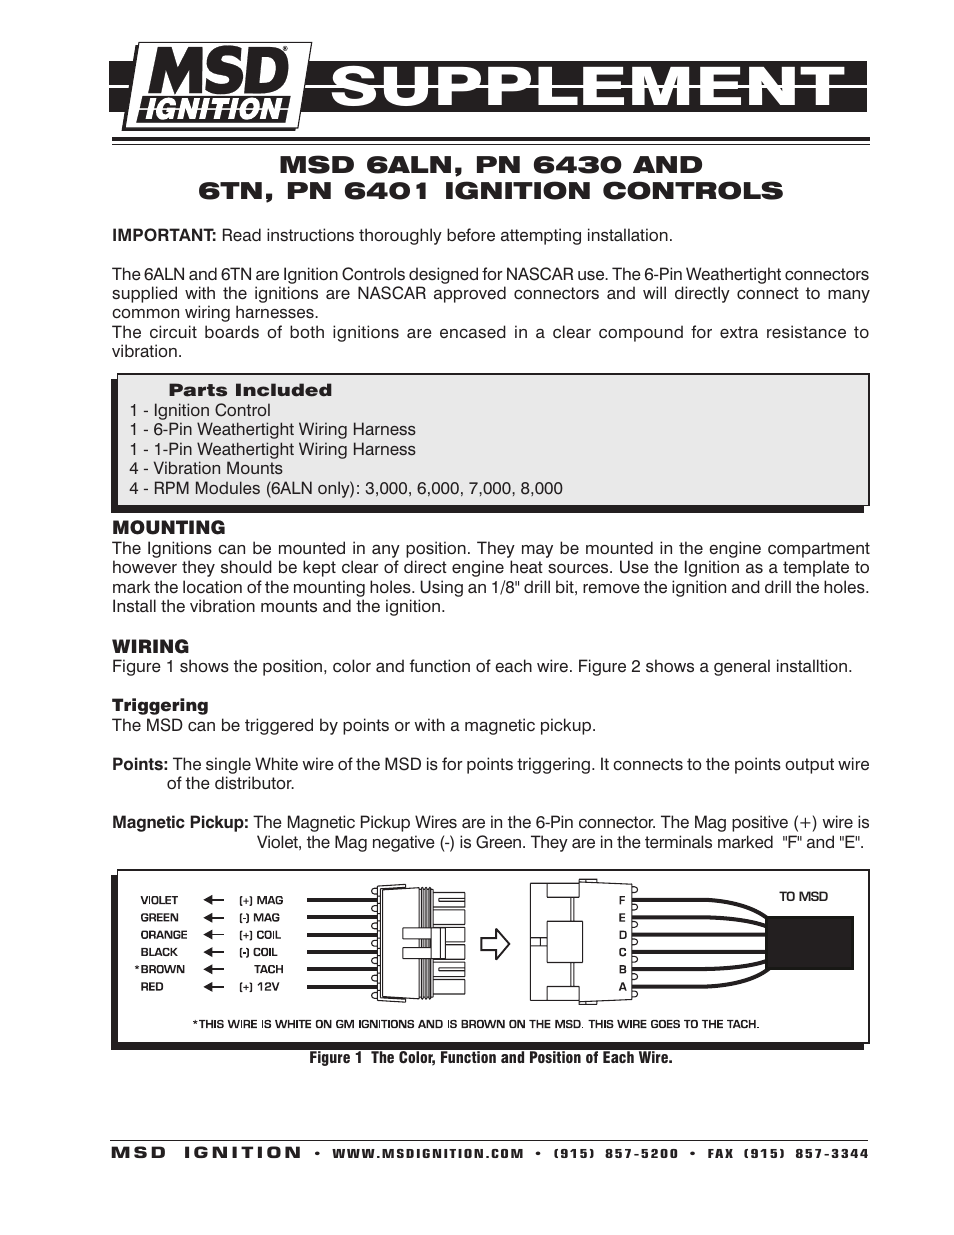 msd 6430 6aln ignition control supplement page1 tg66m3170c00 wiring diagram,m \u2022 indy500 co  at cita.asia